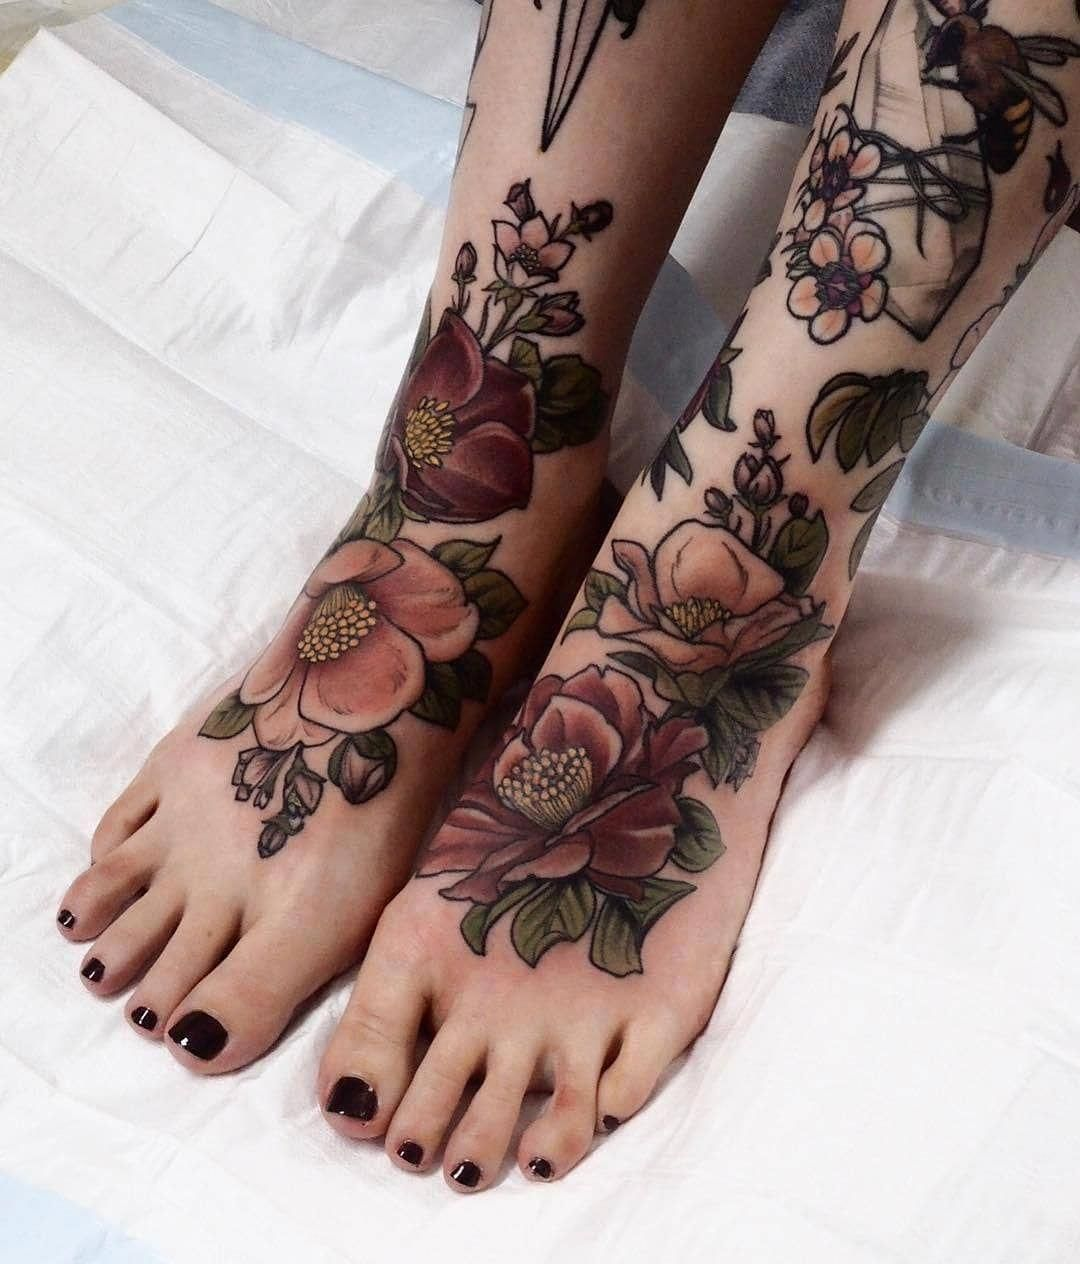 11+ Awesome Top of foot tattoo ideas image ideas